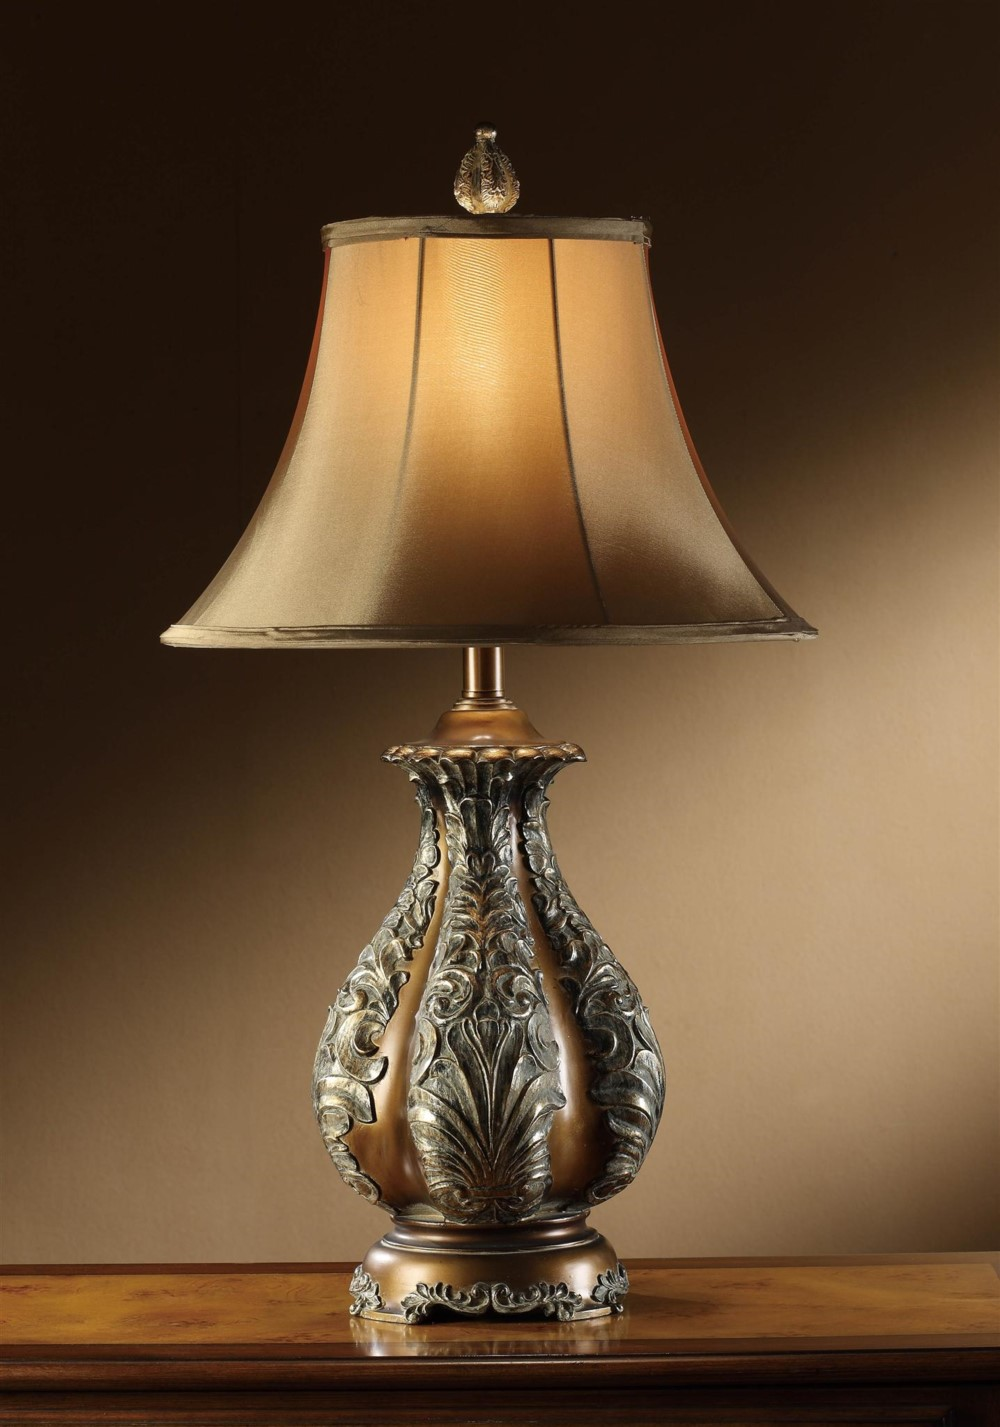 bronze with gold accents table lamp large silk shade light ebay. Black Bedroom Furniture Sets. Home Design Ideas